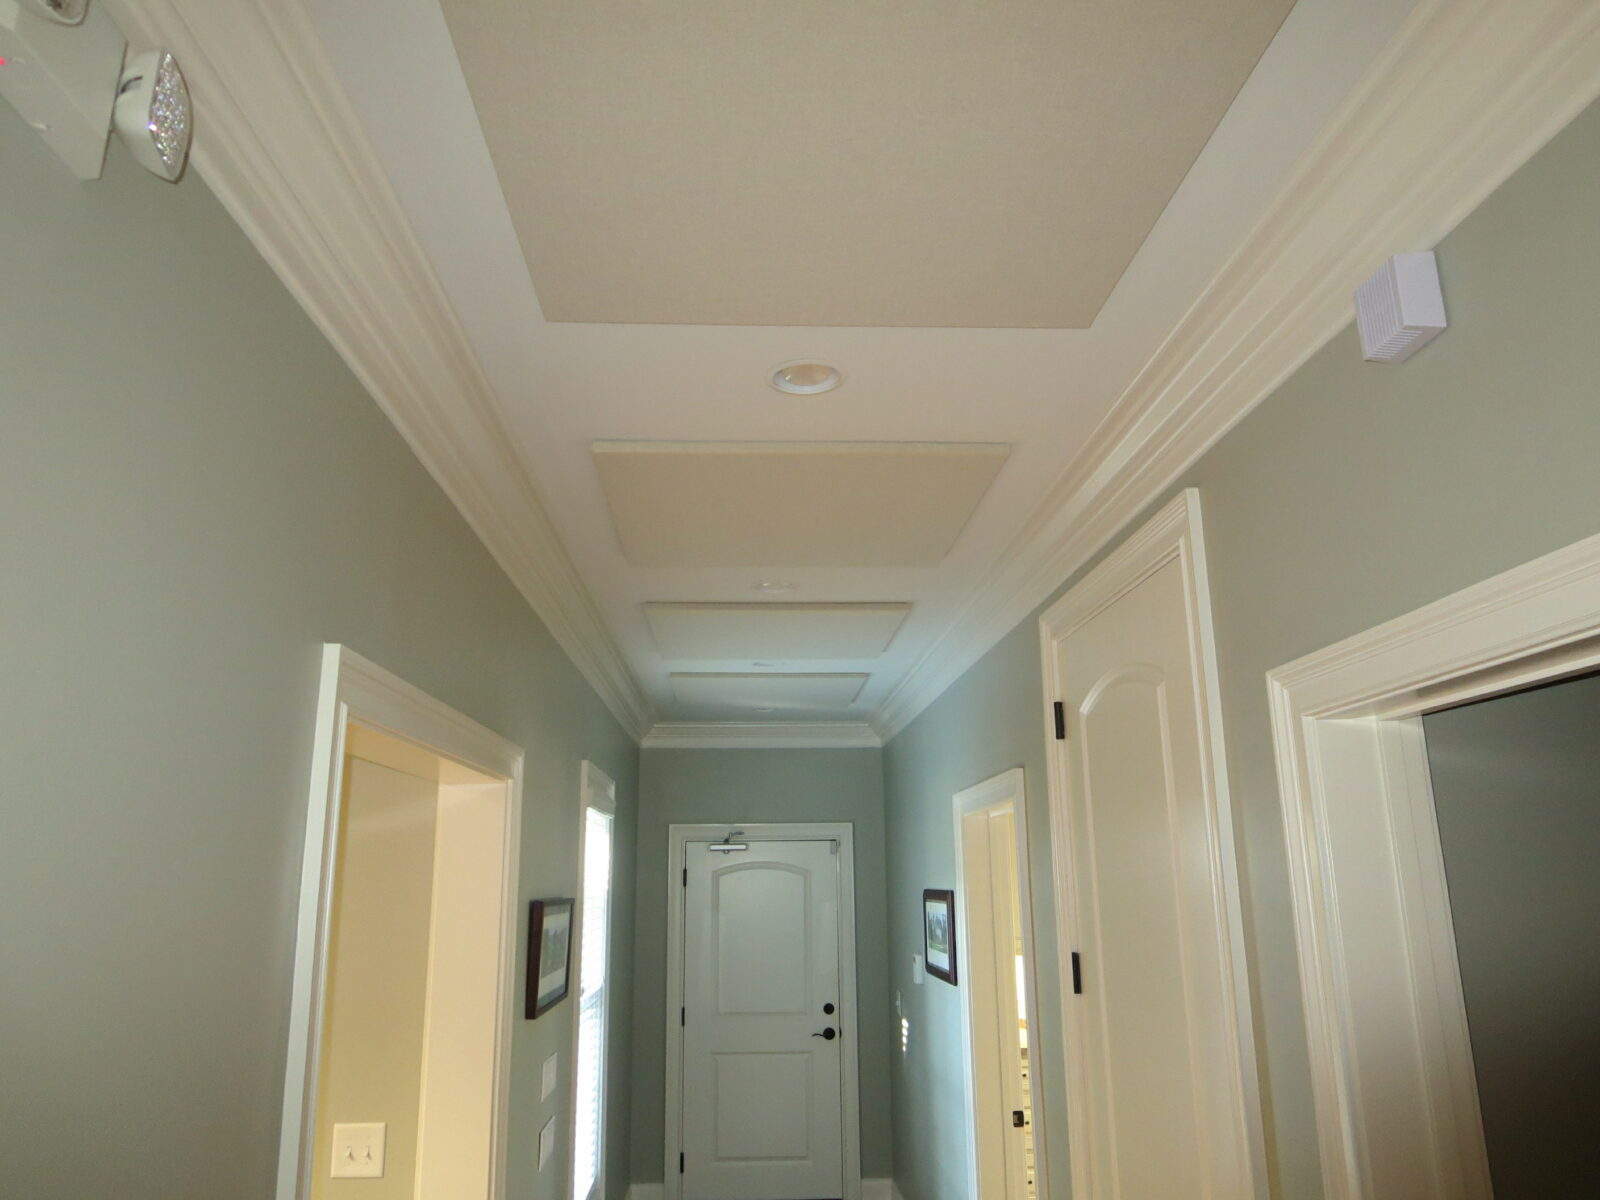 cut iwxfq enter ceilings how image panel for paneling questions to hardwood floor description home wood here ceiling angled